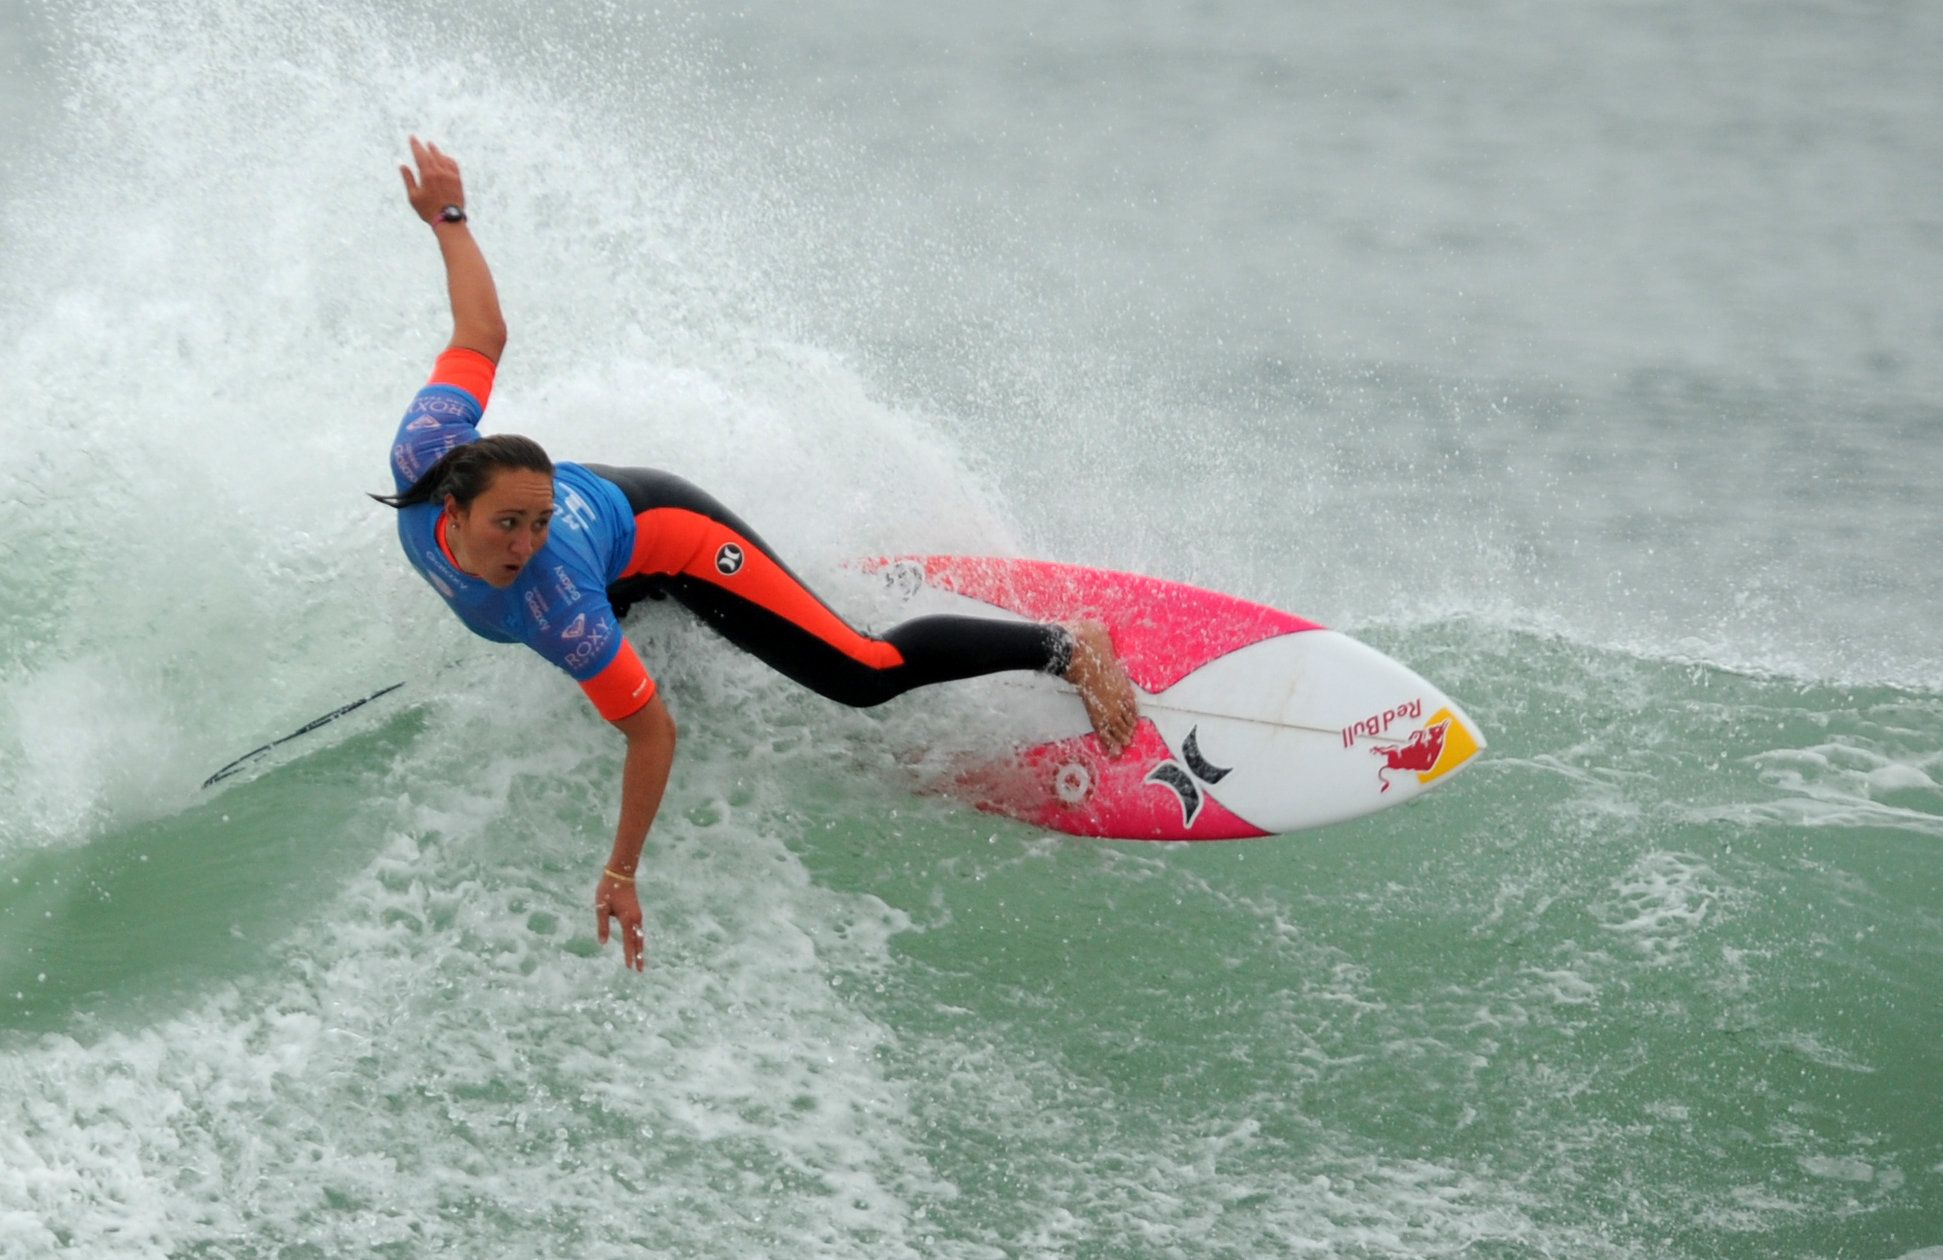 The World Surf League finally made good on its promise to award surfers equally.